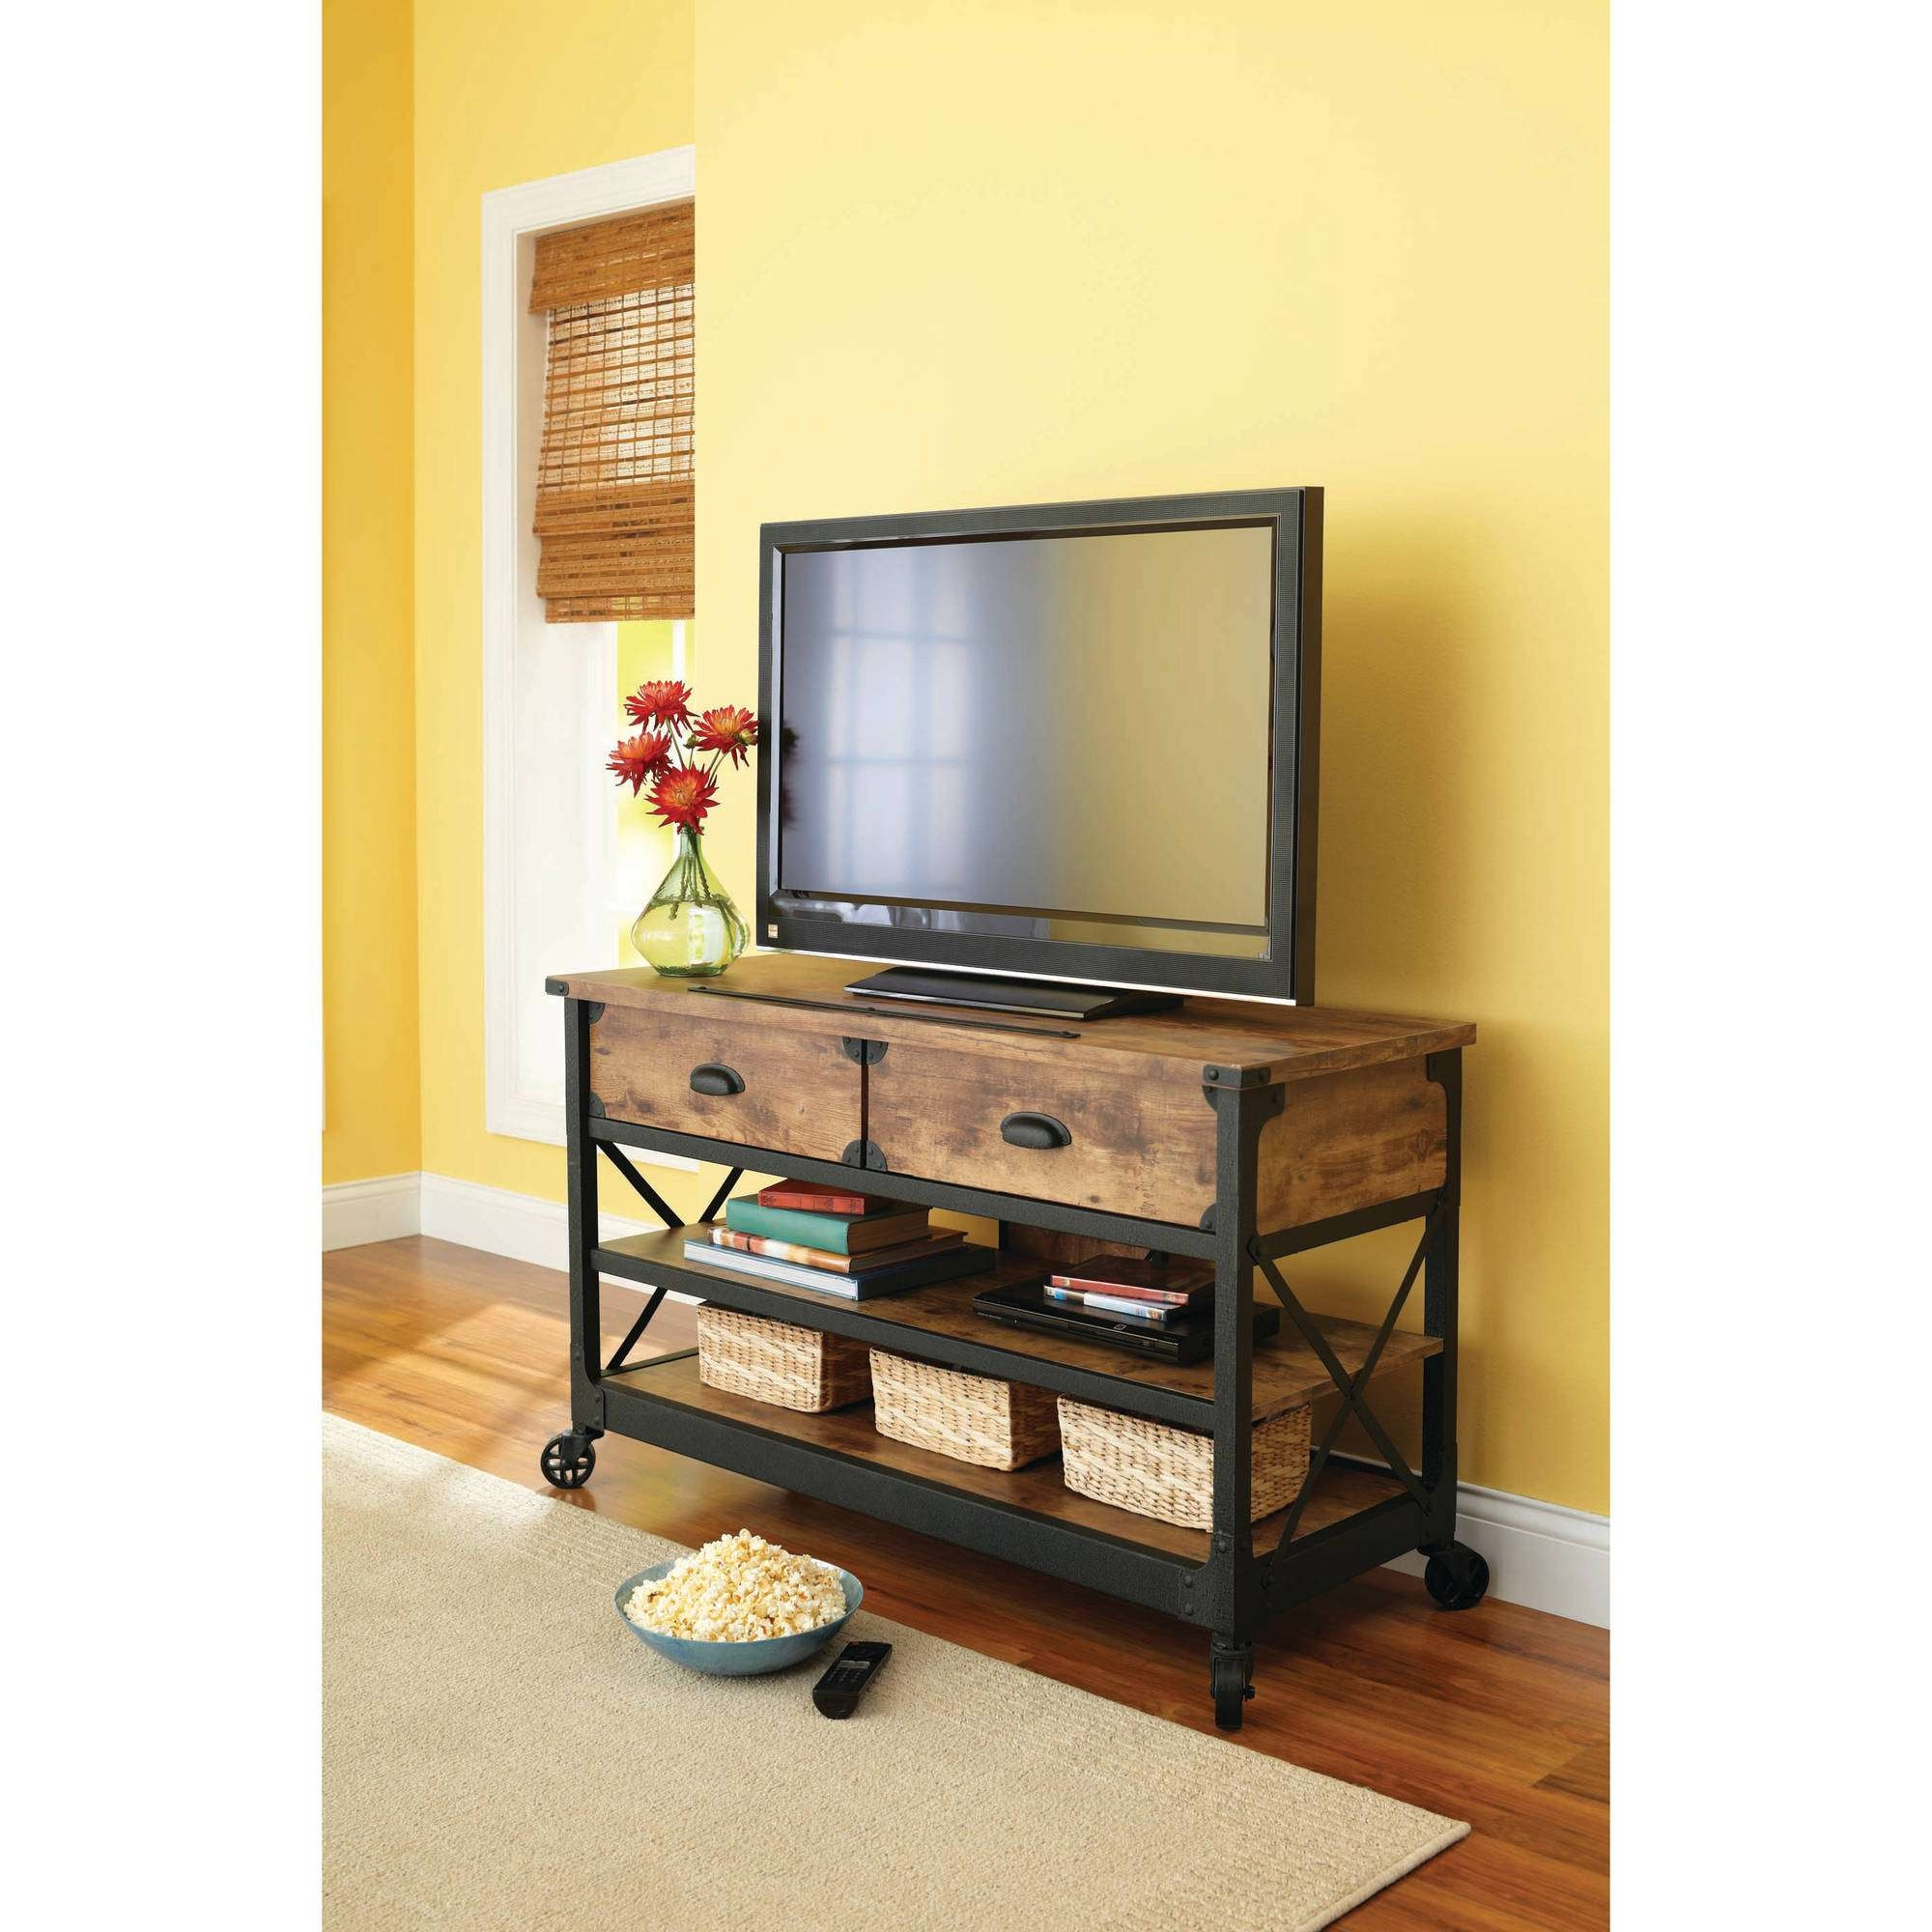 Better Homes And Gardens Rustic Country Antiqued Black/pine Panel Regarding Corner Tv Stands With Drawers (View 15 of 15)